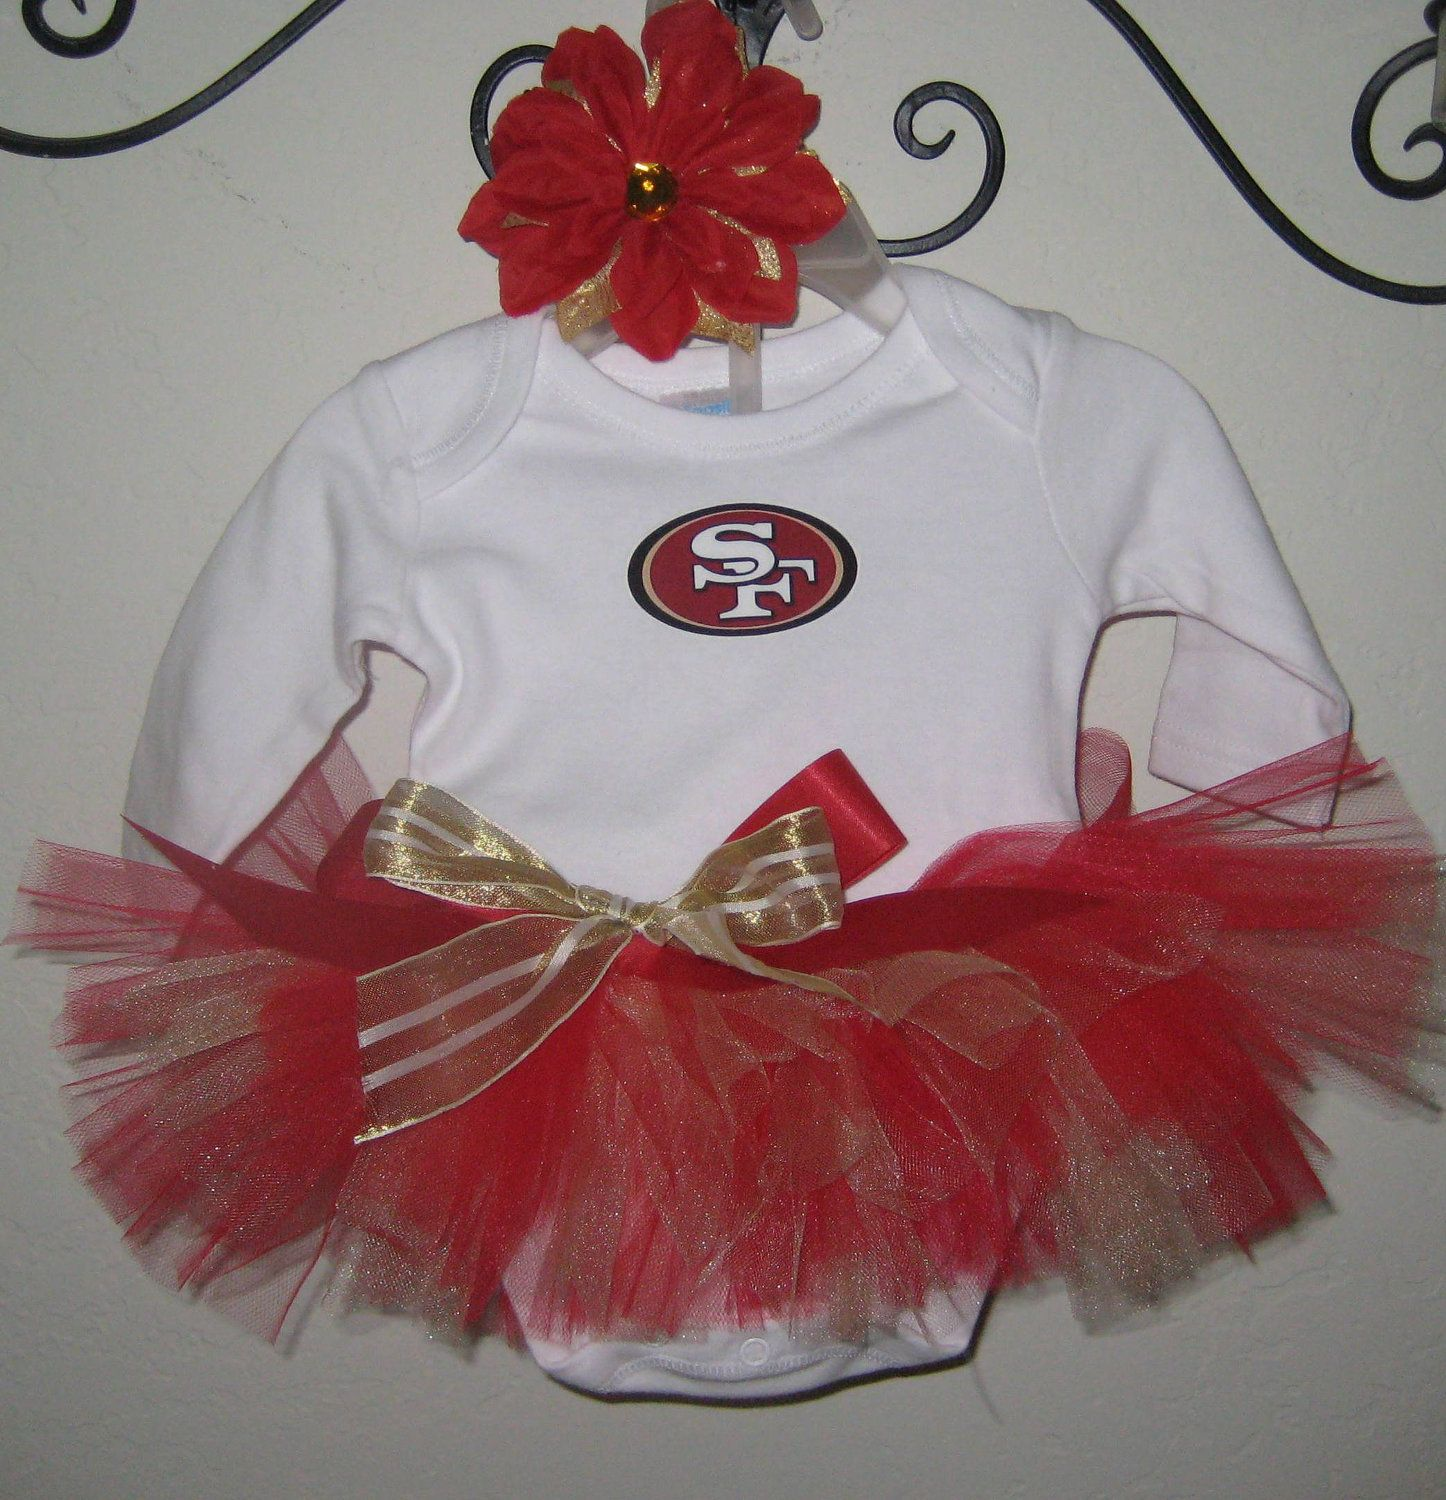 49ers Tutu Outfits Toddler & Girls by strawberryluv on Etsy $35 00